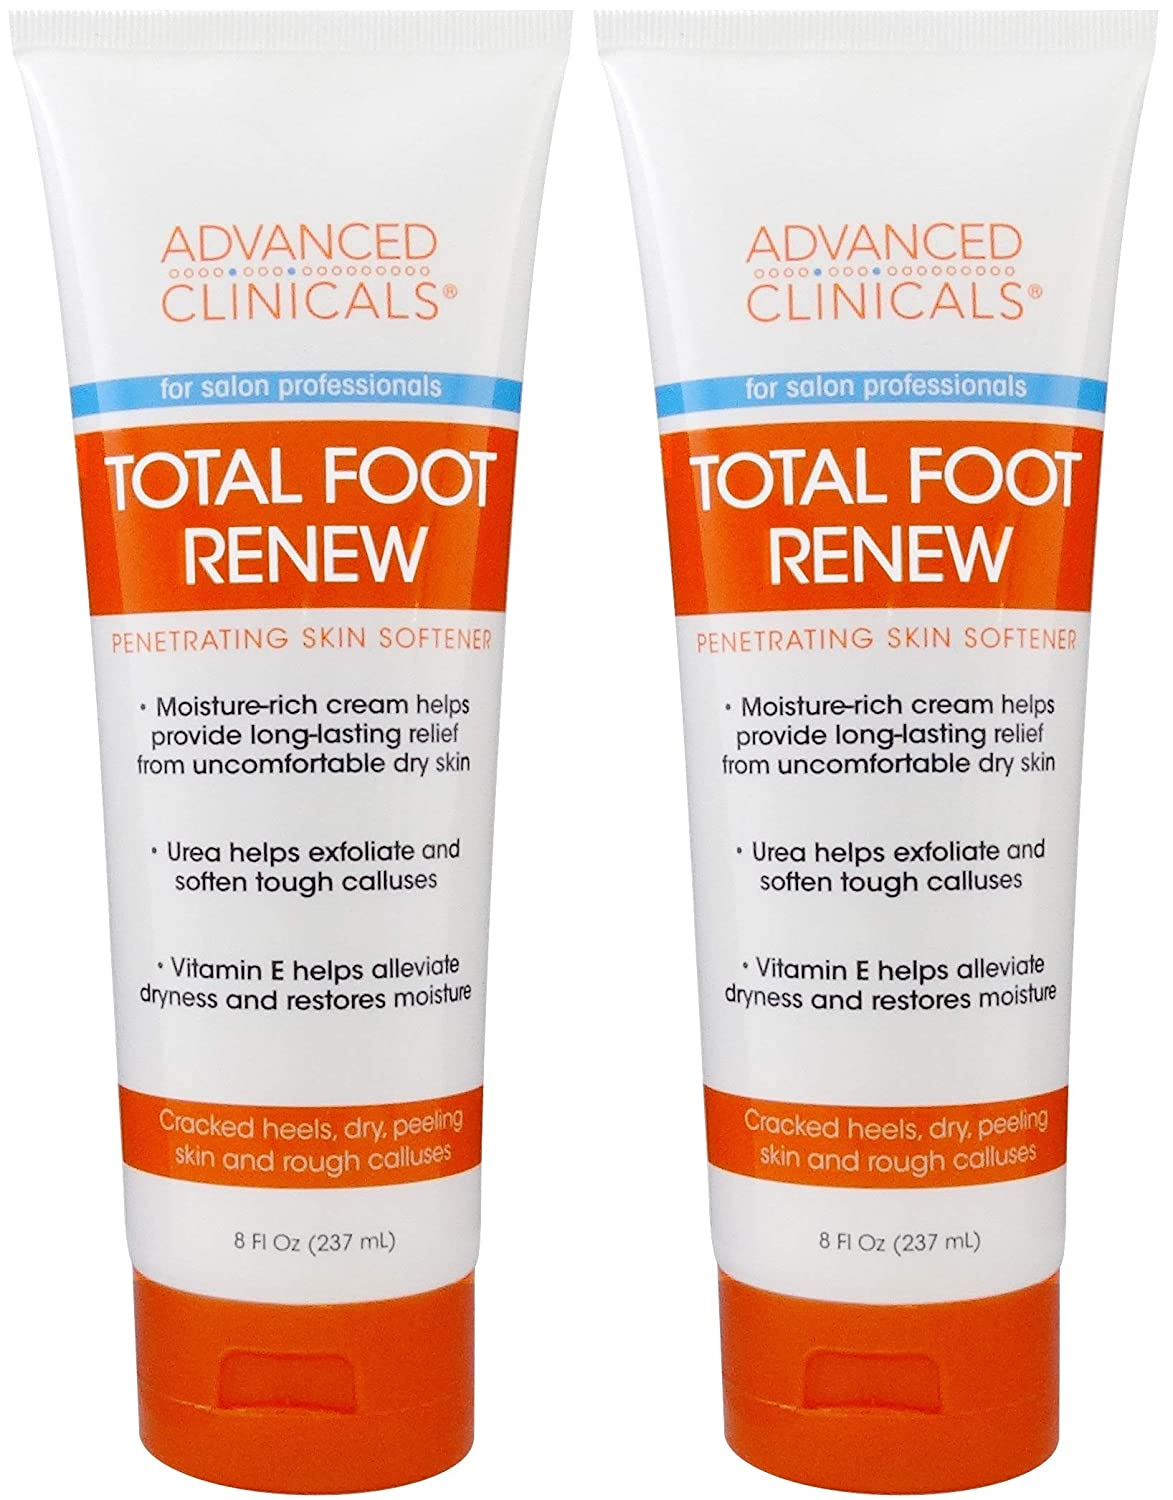 Advanced Clinicals Total Foot Renew Cream- Relief for Dry Itchy Skin, Tough Calluses, Cracked Heel. (Two - 8oz)